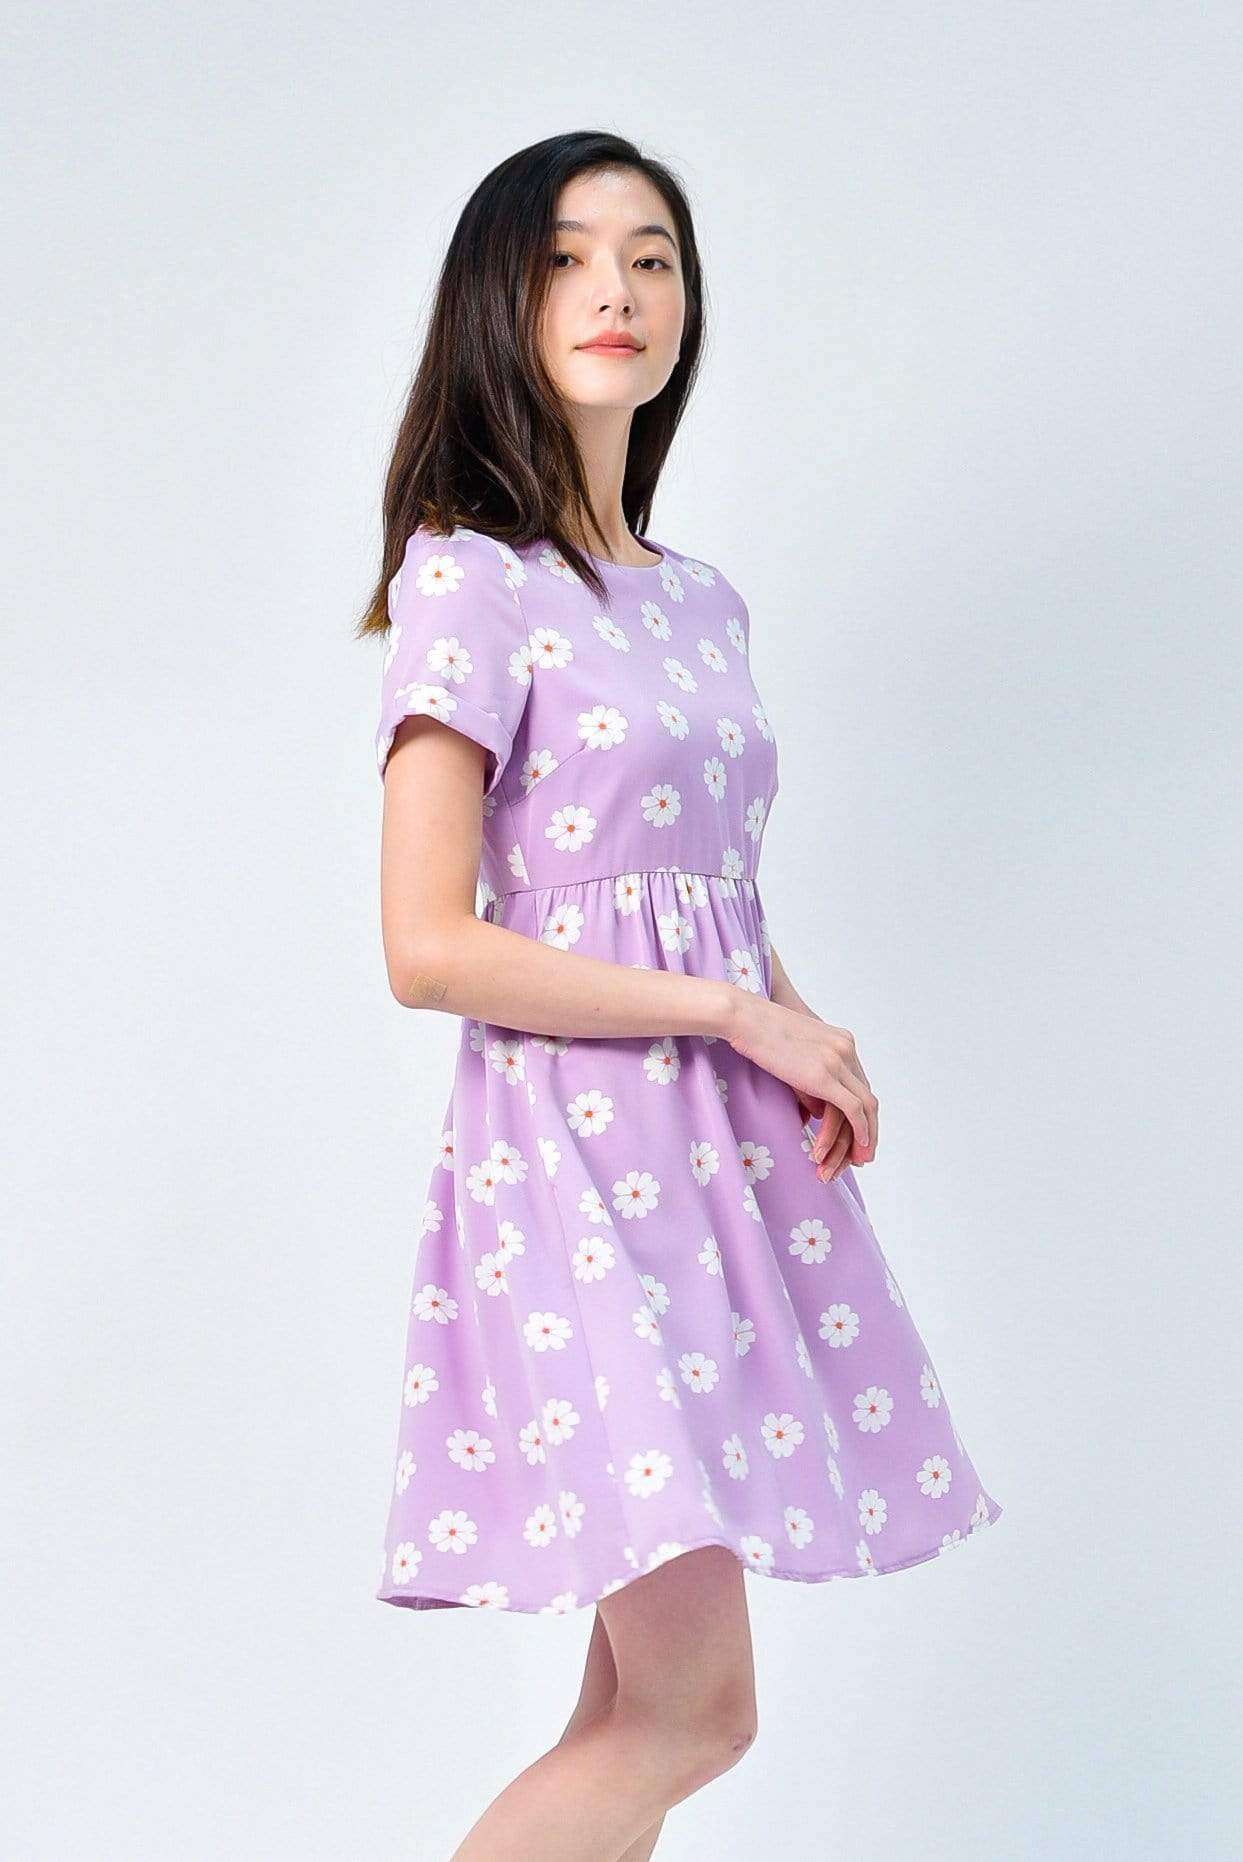 AVERY LAVENDER FLORAL SLEEVED BABYDOLL DRESS